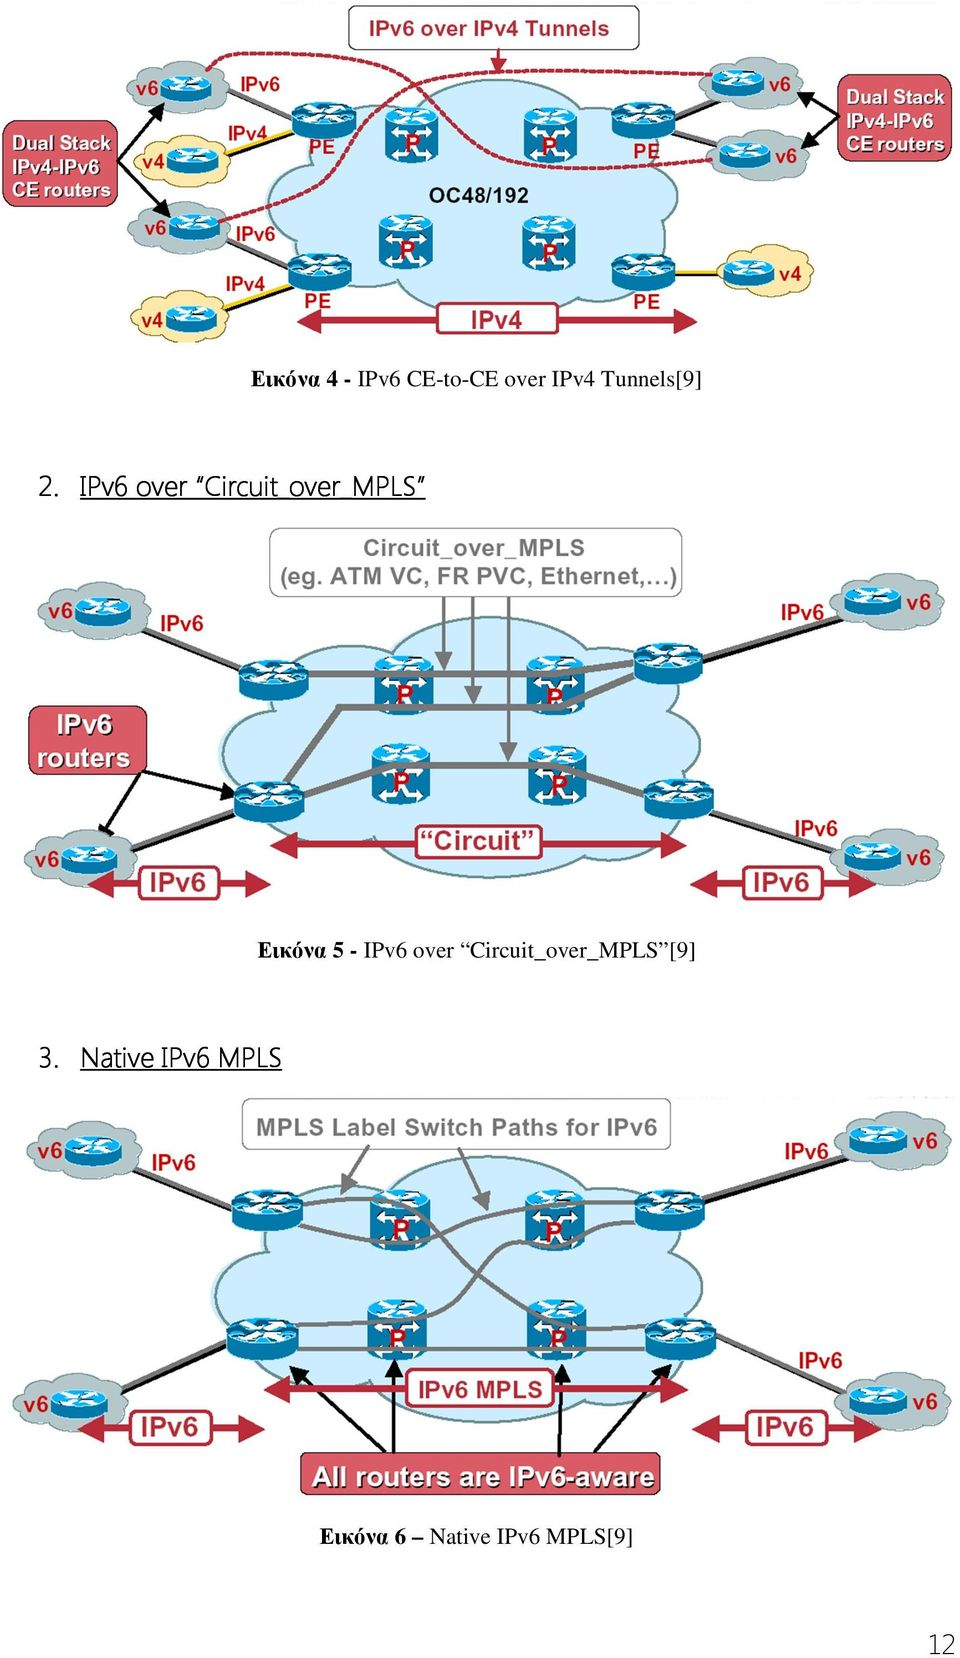 IPv6 over Circuit_over_MPLS Εικόνα 5 -